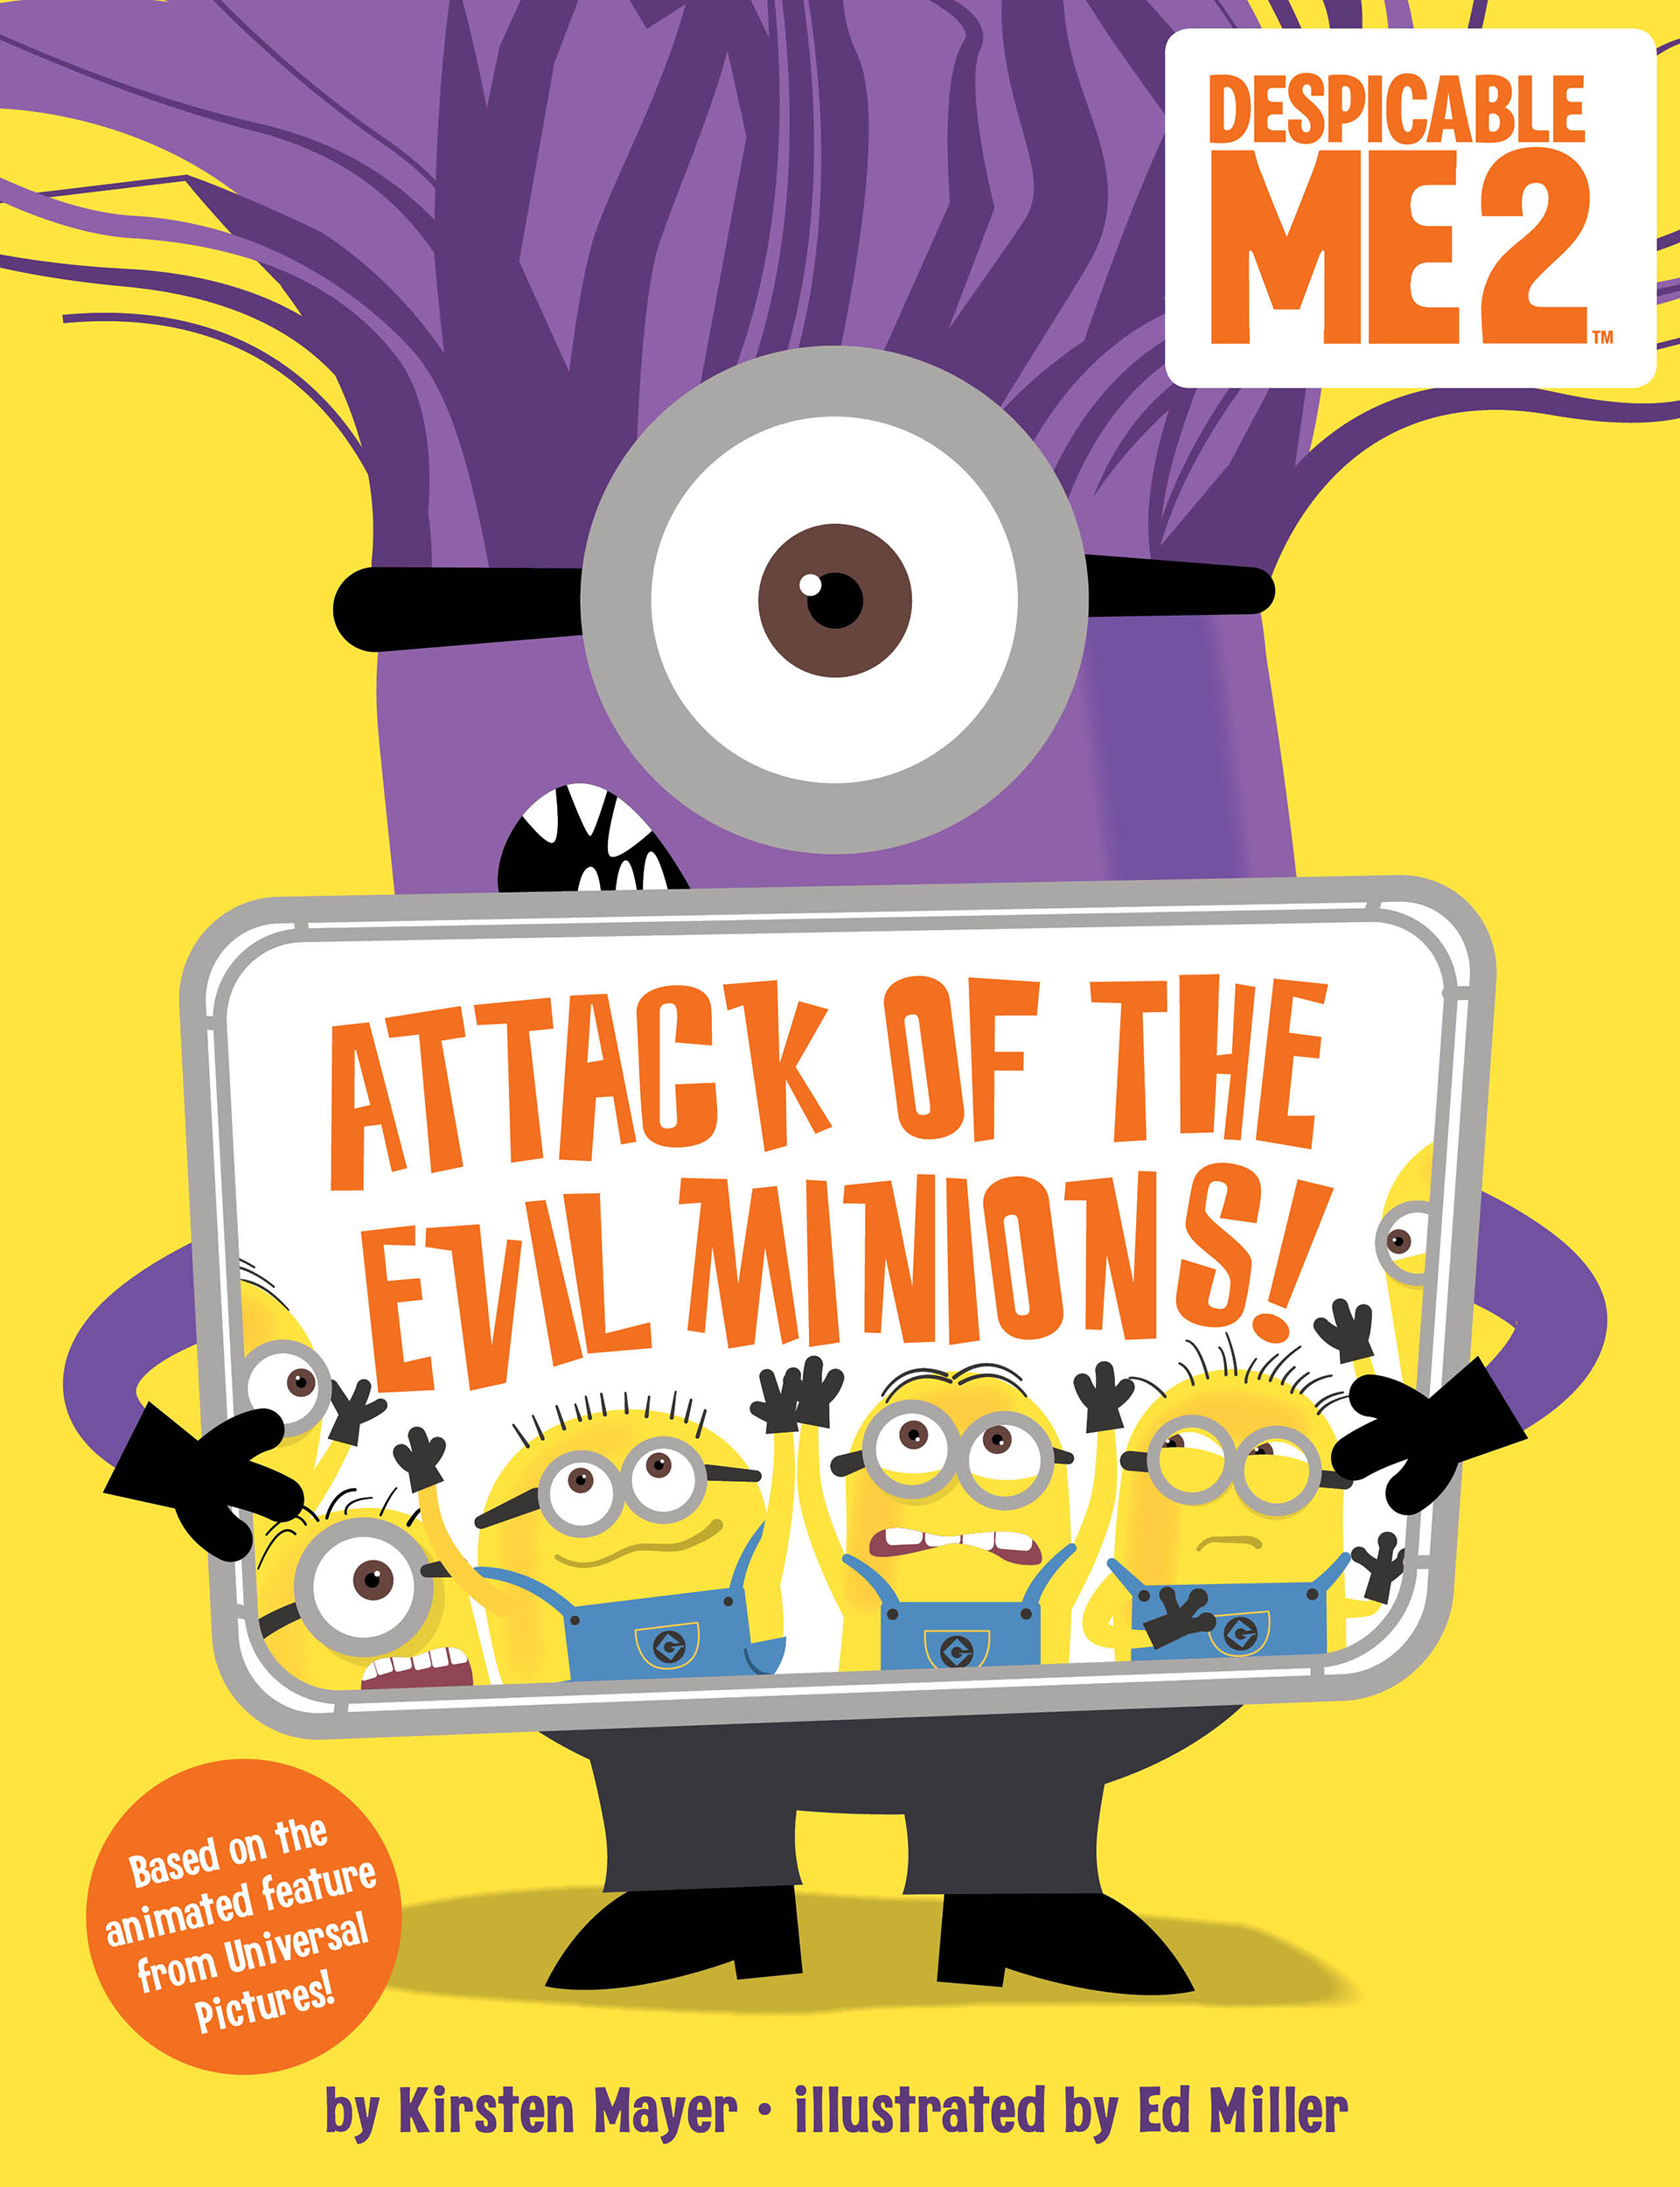 despicable me 2: attack of the evil minions! | bookkirsten mayer